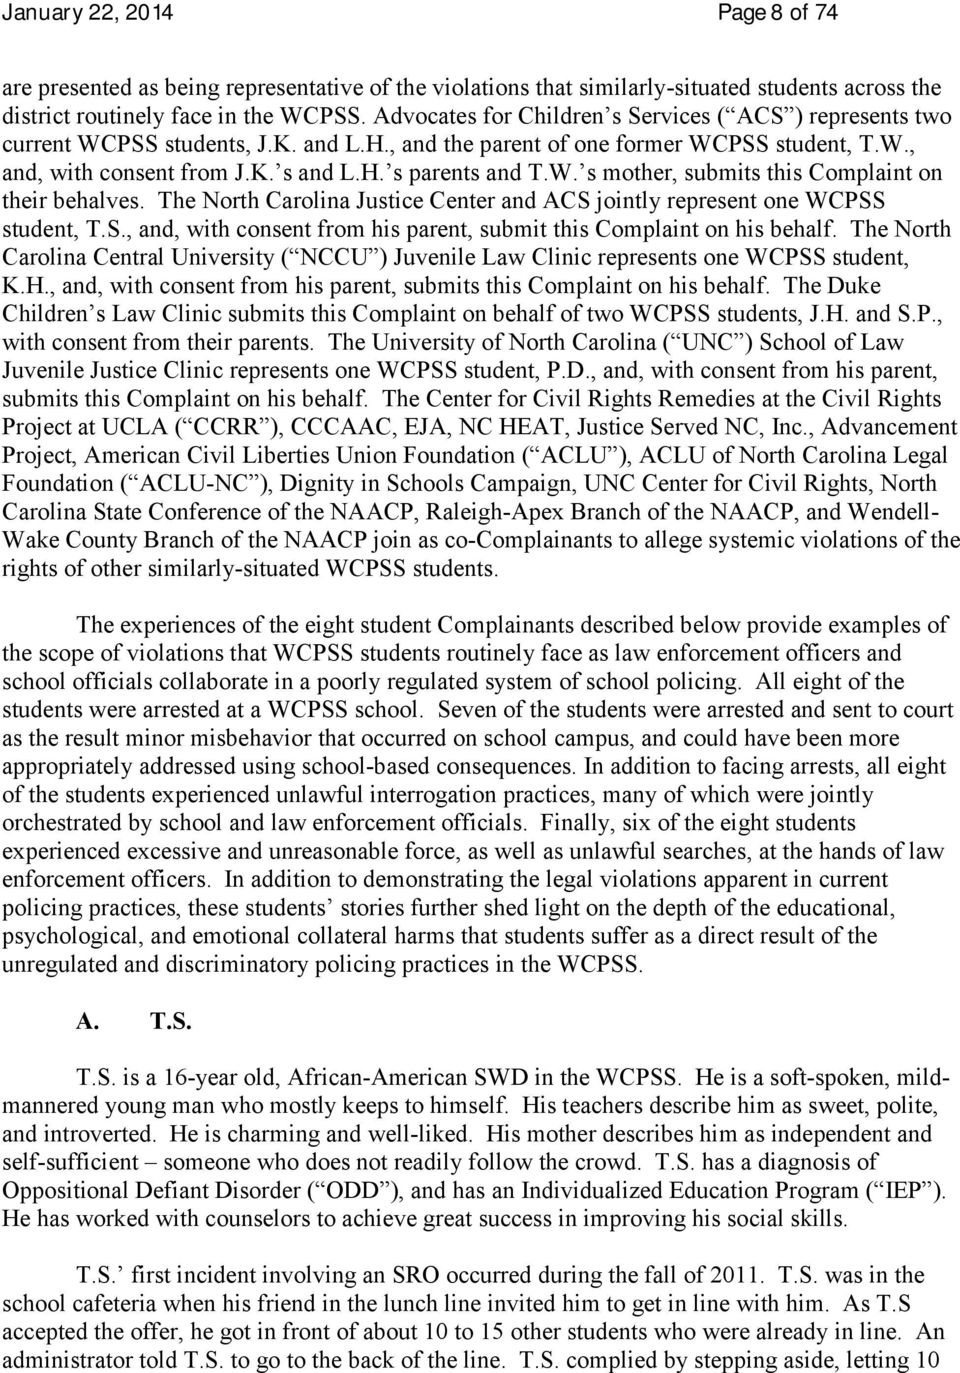 W. s mother, submits this Complaint on their behalves. The North Carolina Justice Center and ACS jointly represent one WCPSS student, T.S., and, with consent from his parent, submit this Complaint on his behalf.